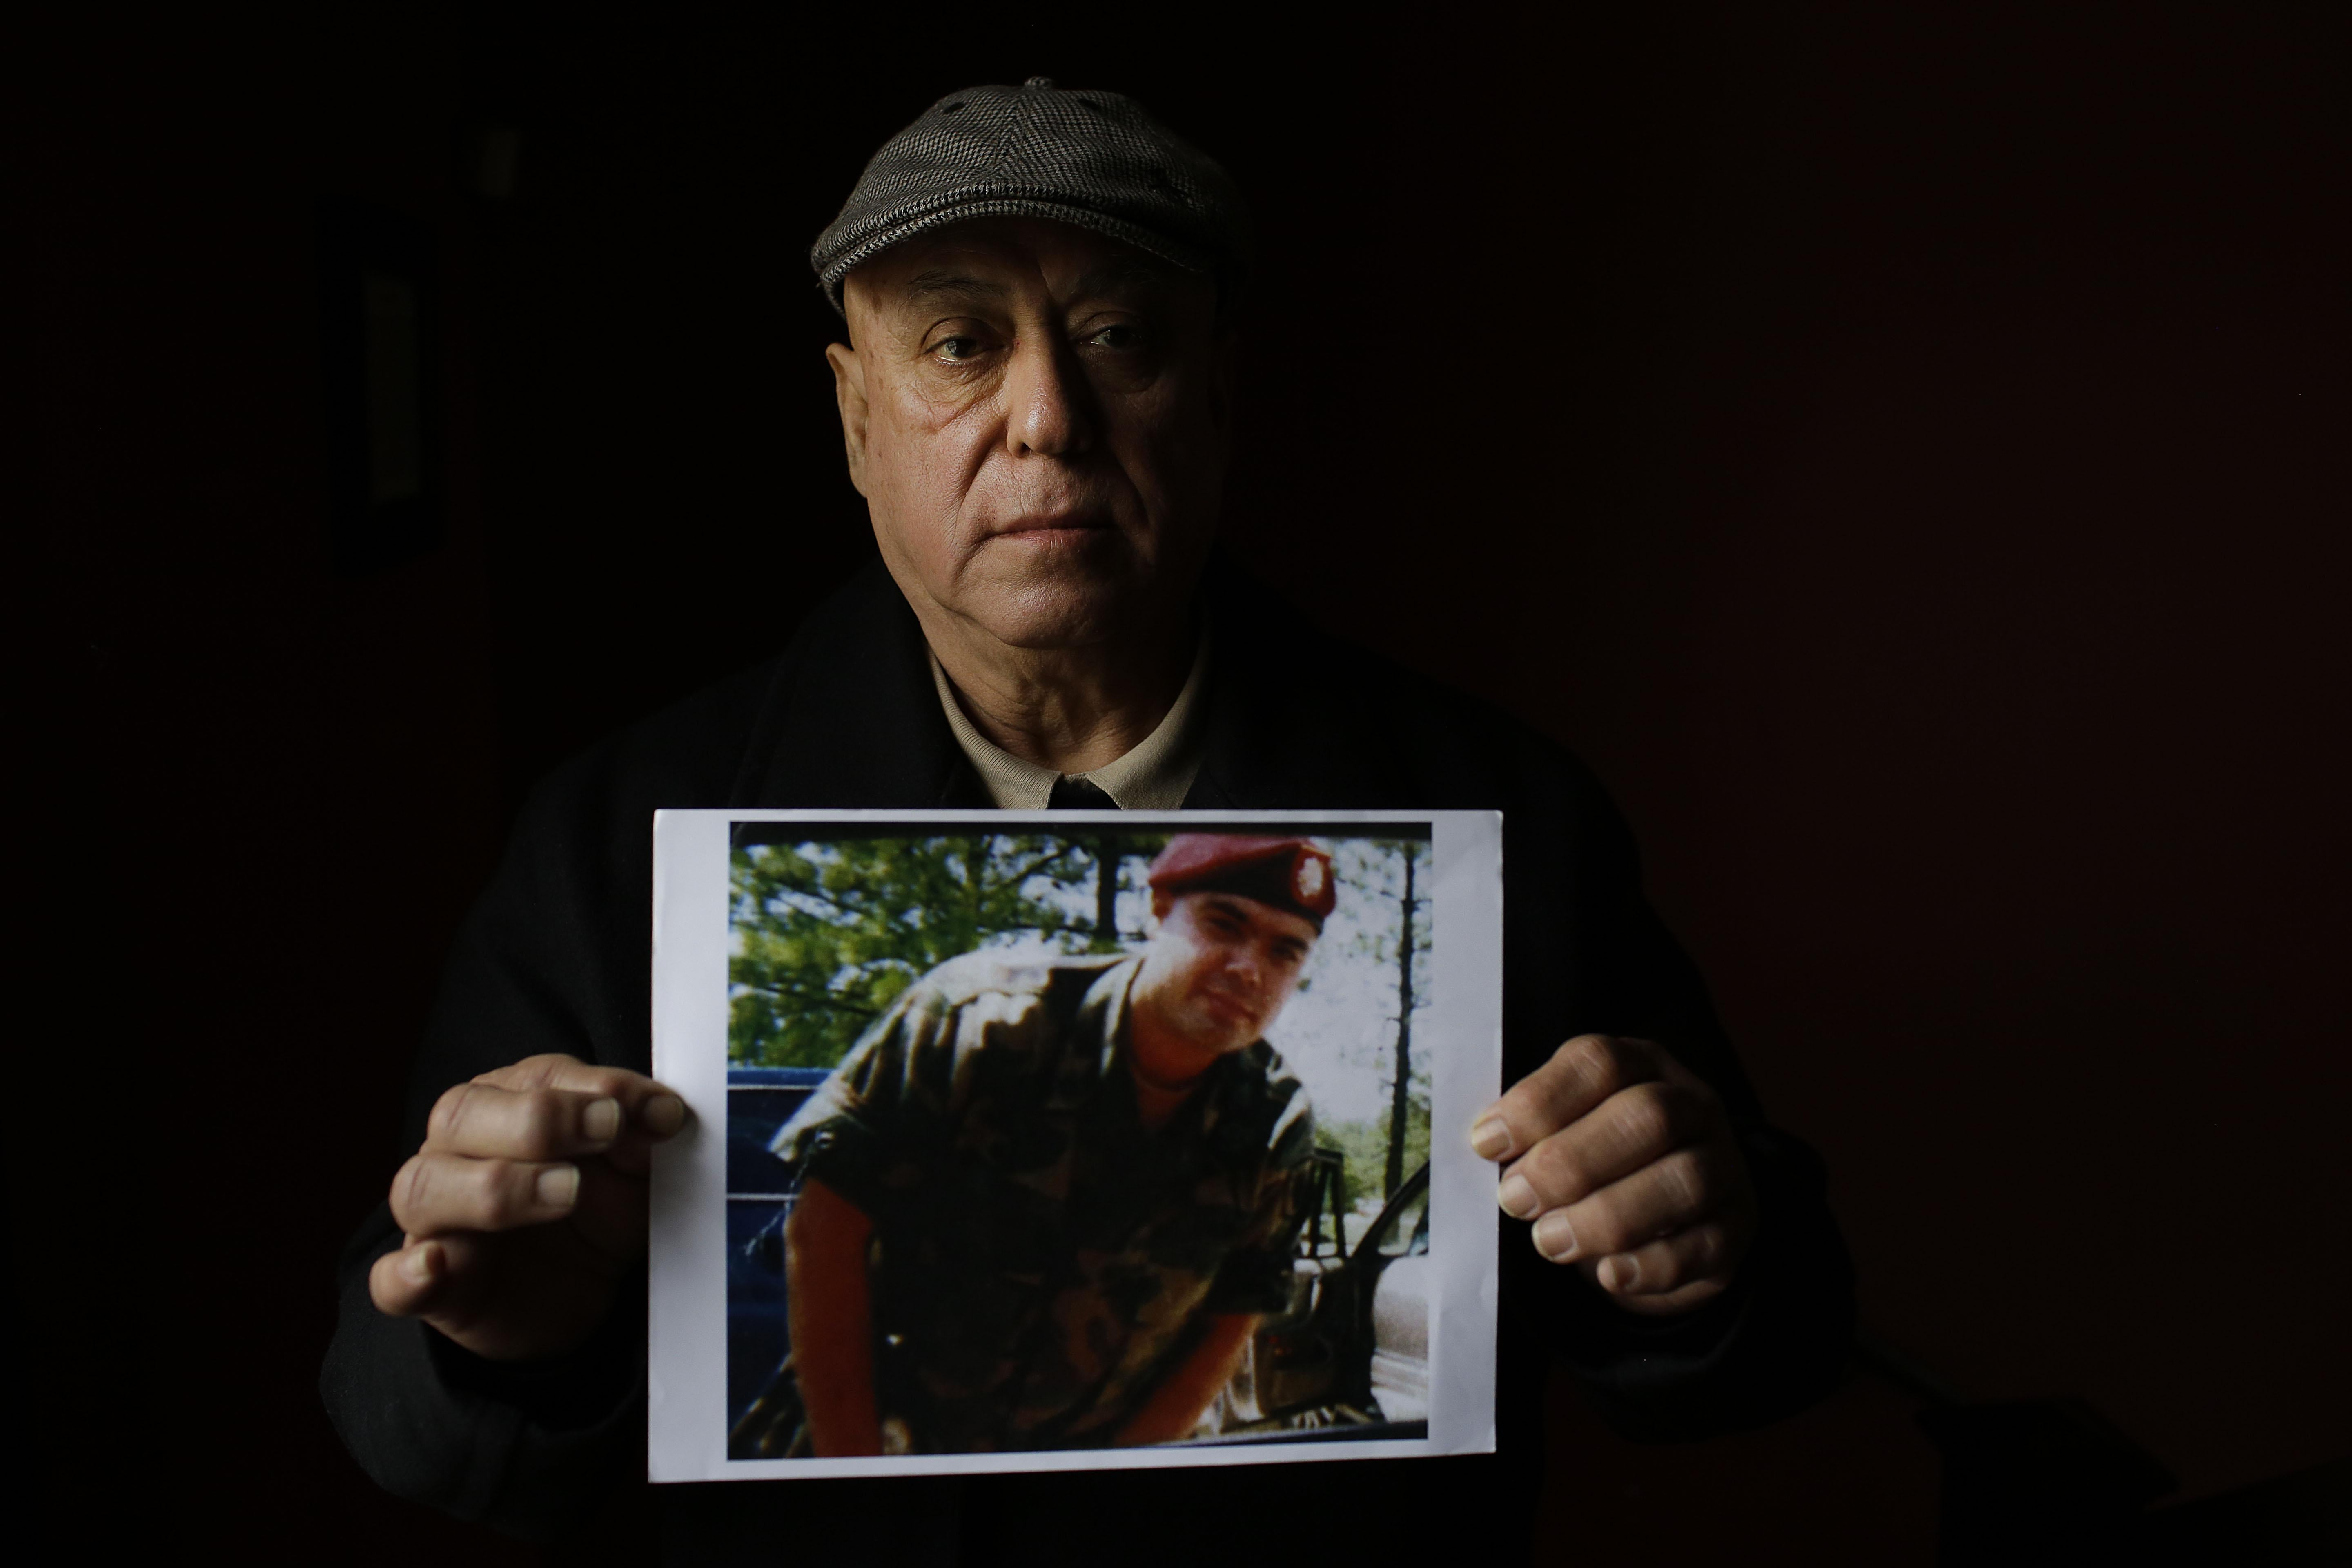 Miguel Perez poses as he holds a photo of his son Miguel Perez Jr., on April 4, 2017 in Chicago, Illinois.